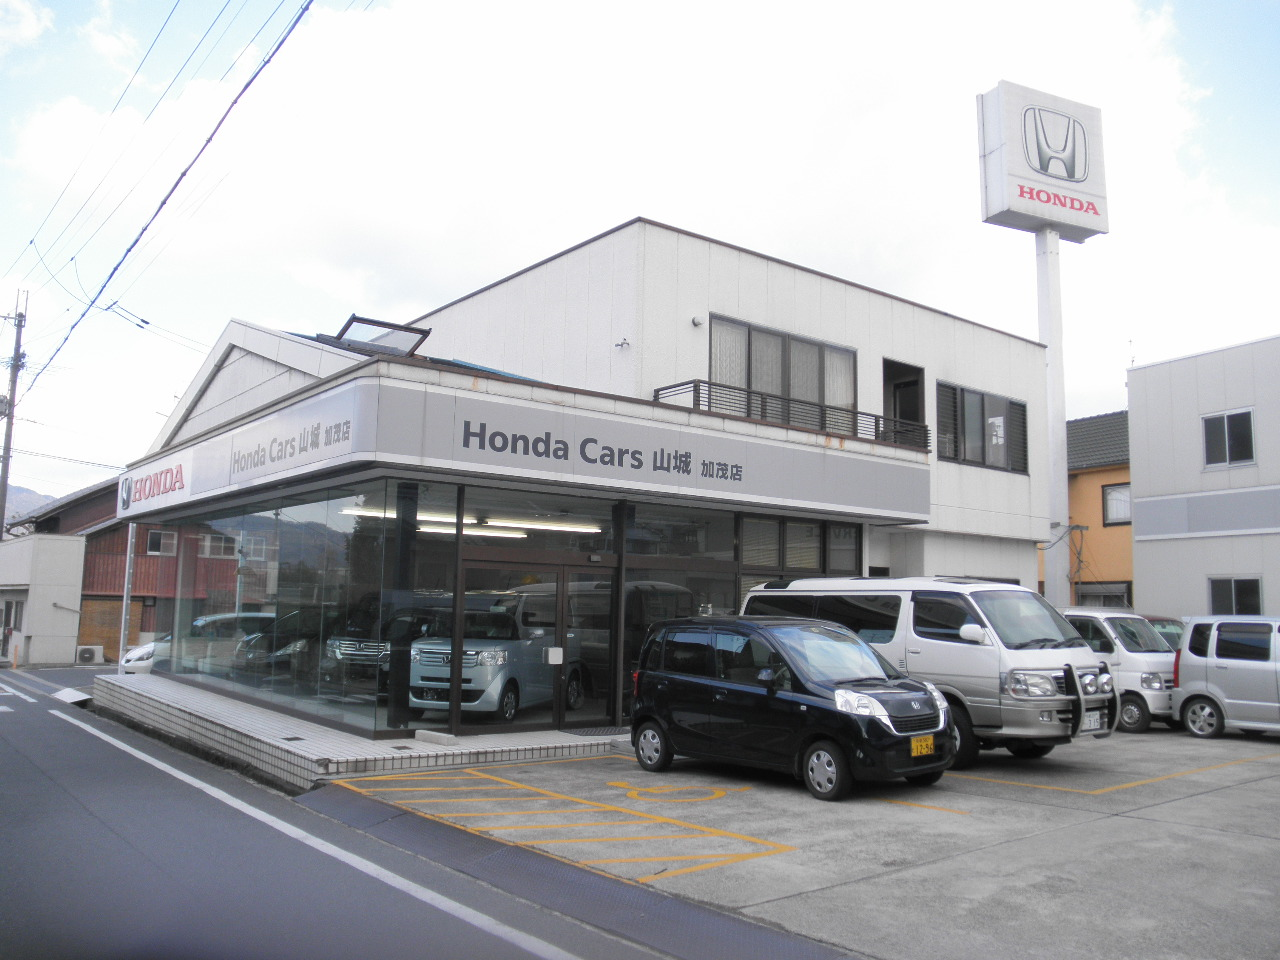 south motors honda miami florida honda new car dealer